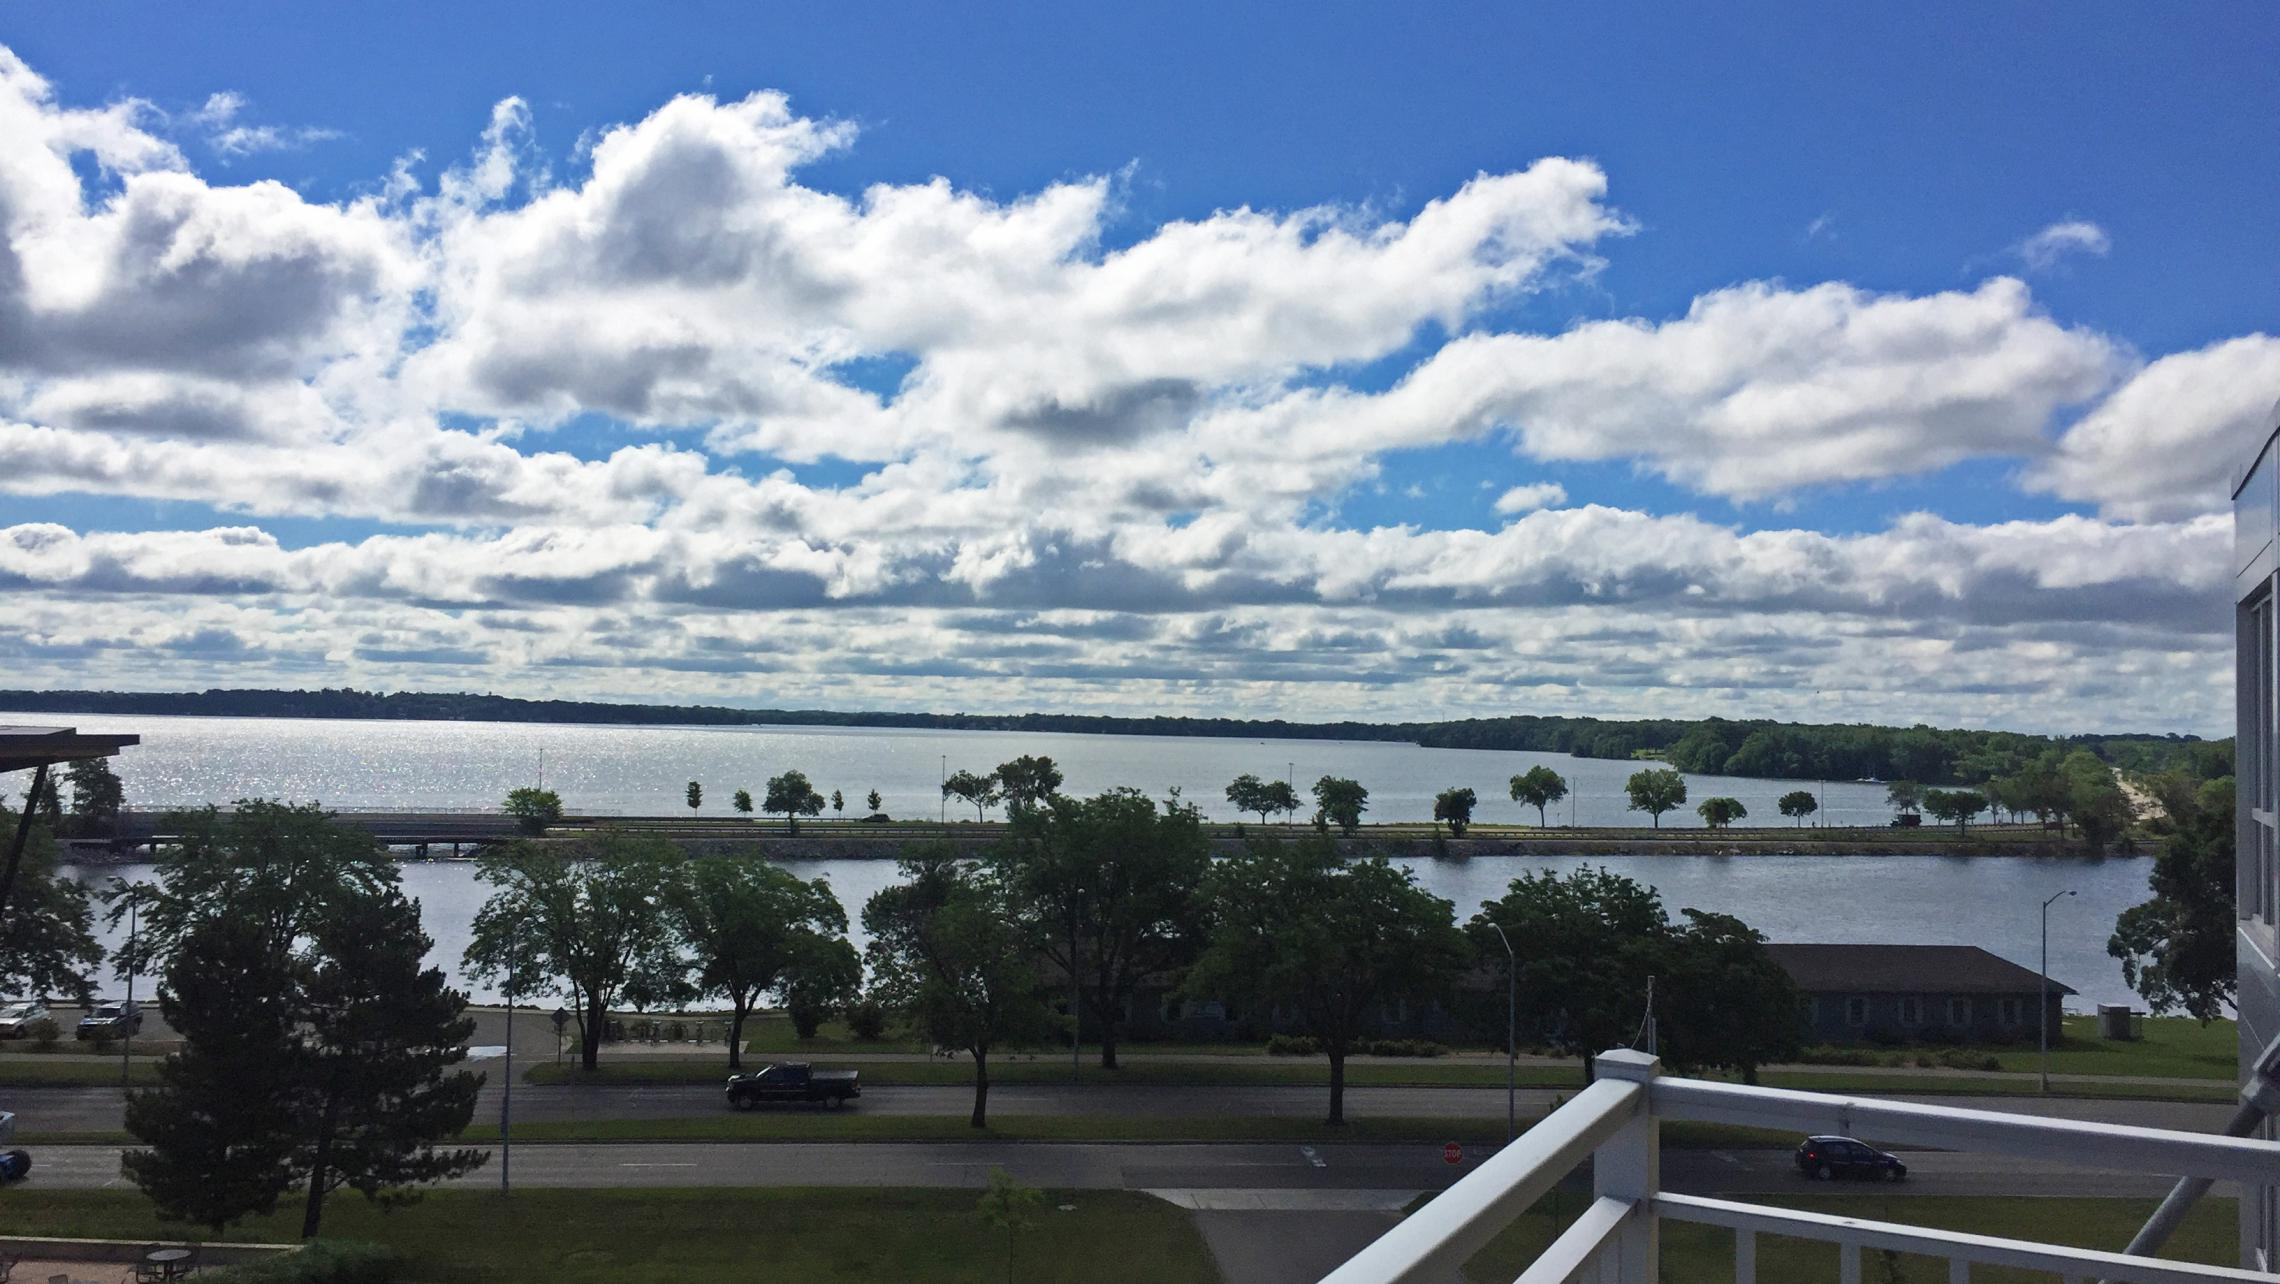 ULI Nine Line 523 - Lake Monona View